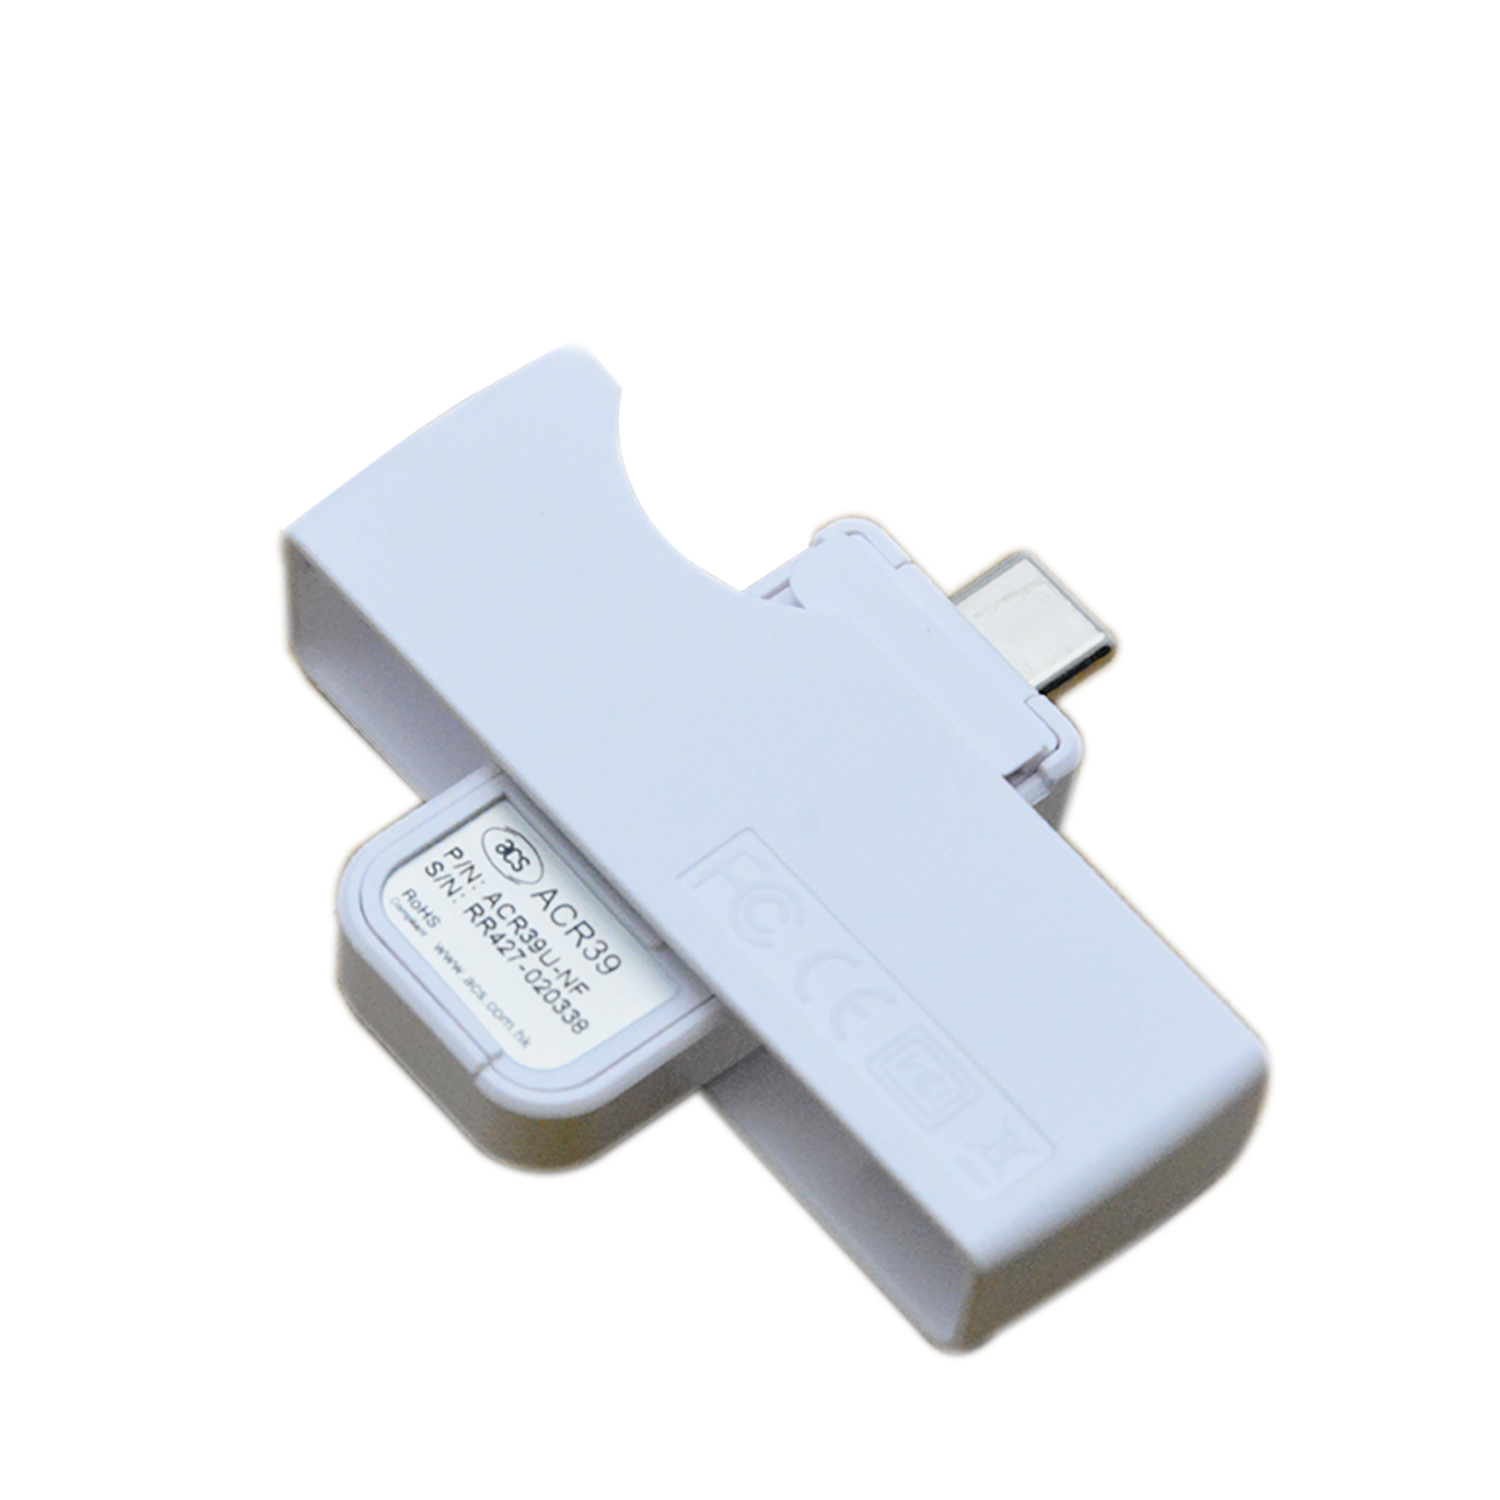 Support Android portable Type C smart card reader iso 7816 with free SDK ACR39U-NF